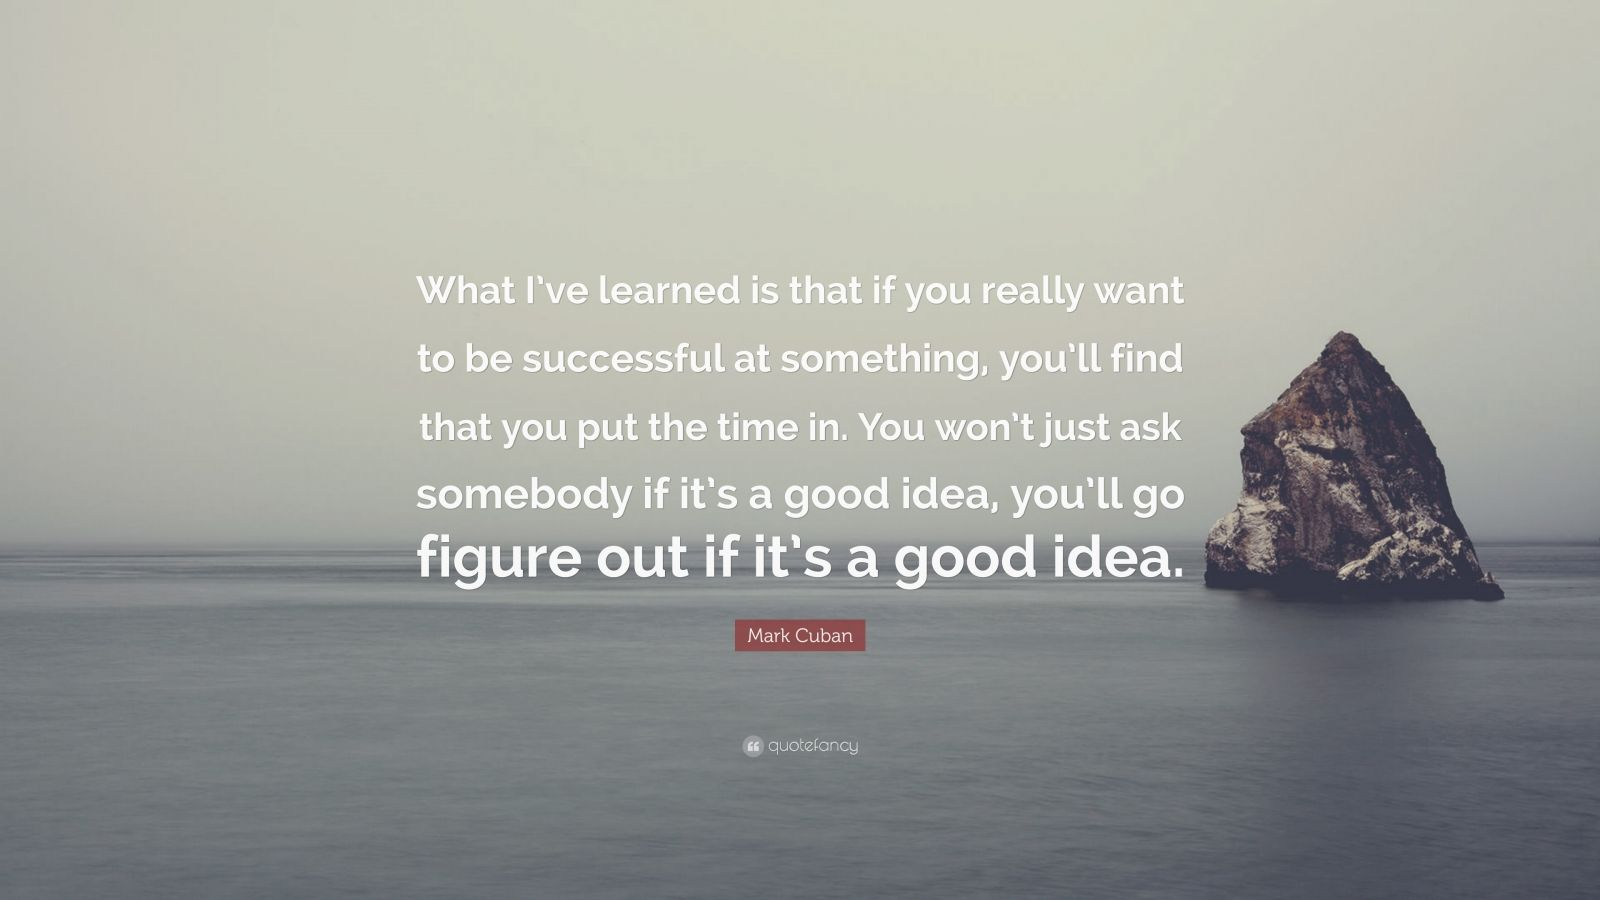 """Mark Cuban Quote: """"What I've learned is that if you really want to be successful at something, you'll find that you put the time in. You won't just ask somebody if it's a good idea, you'll go figure out if it's a good idea."""""""